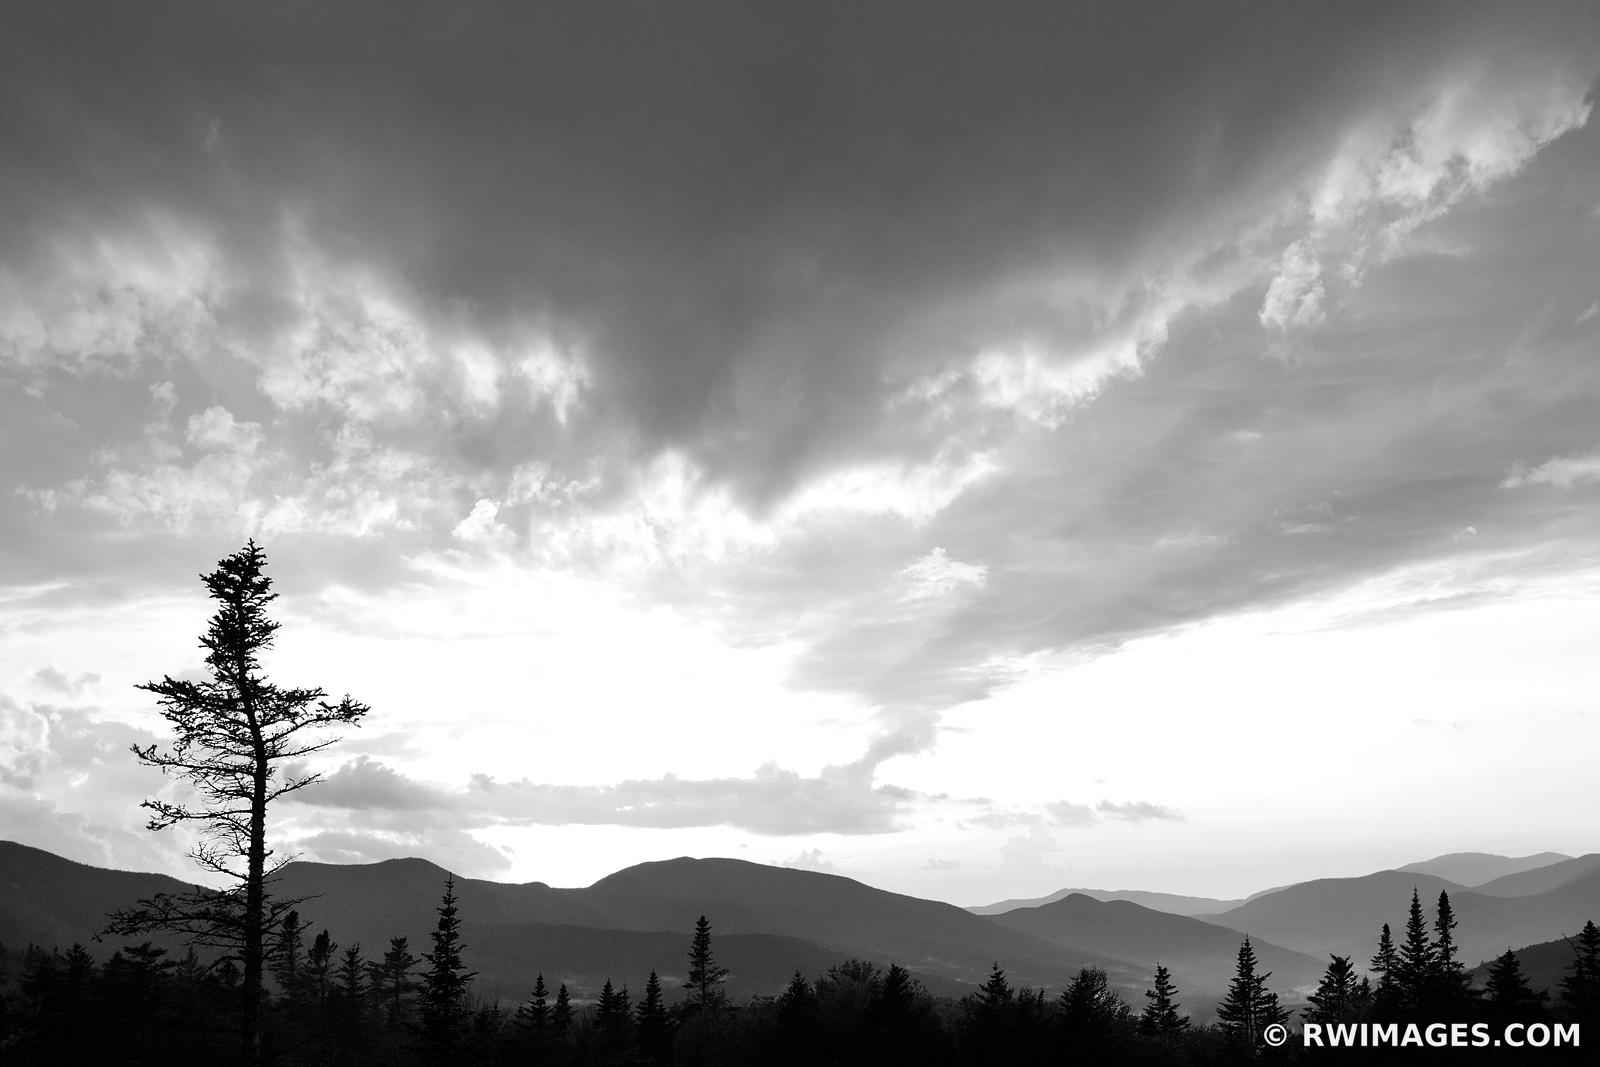 SUNSET WHITE MOUNTAINS KANCAMAGUS HIGHWAY NEW HAMPSHIRE BLACK AND WHITE LANDSCAPE